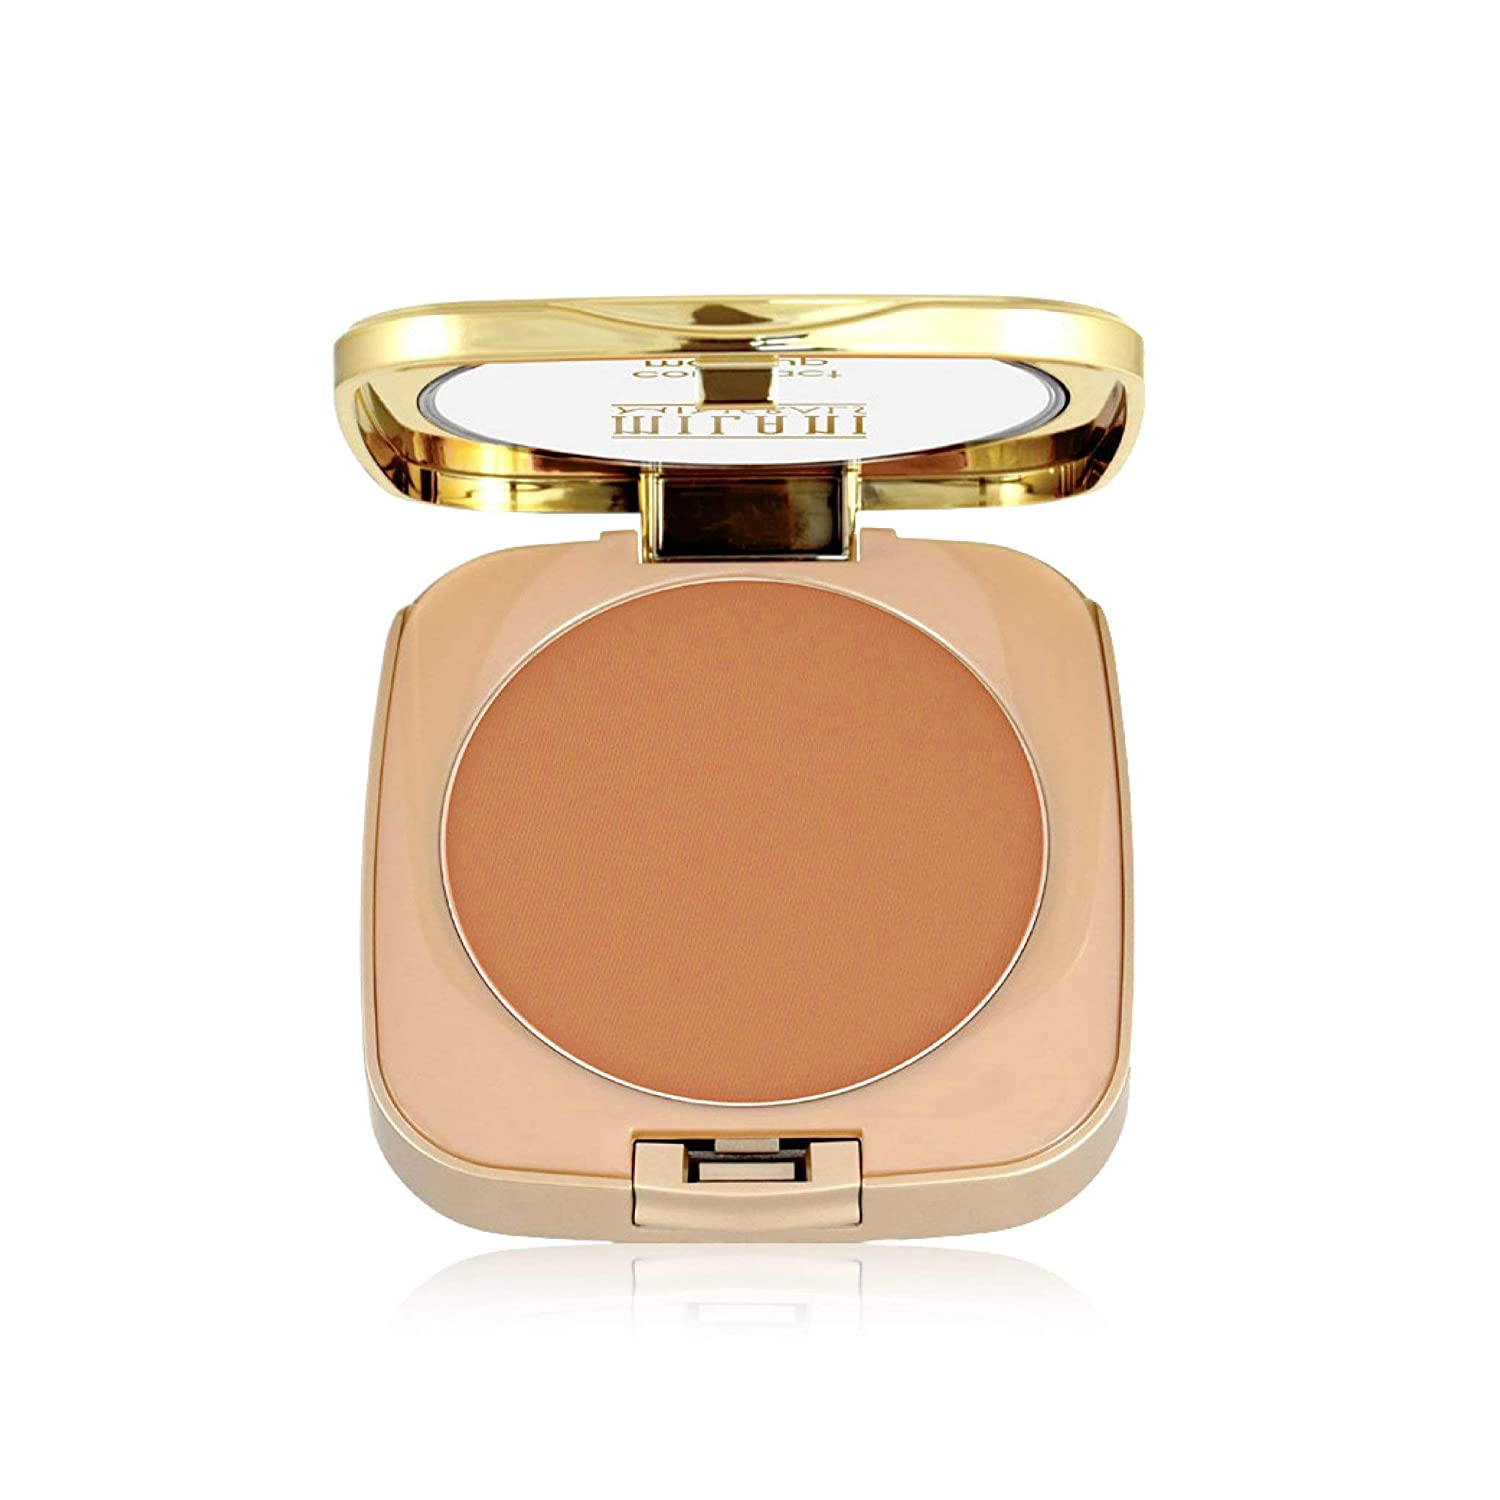 Milani Mineral Compact Makeup - Deep (0.3 Ounce) Vegan, Cruelty-Free Mineral Face Powder with Full Coverage to Conceal Imperfections